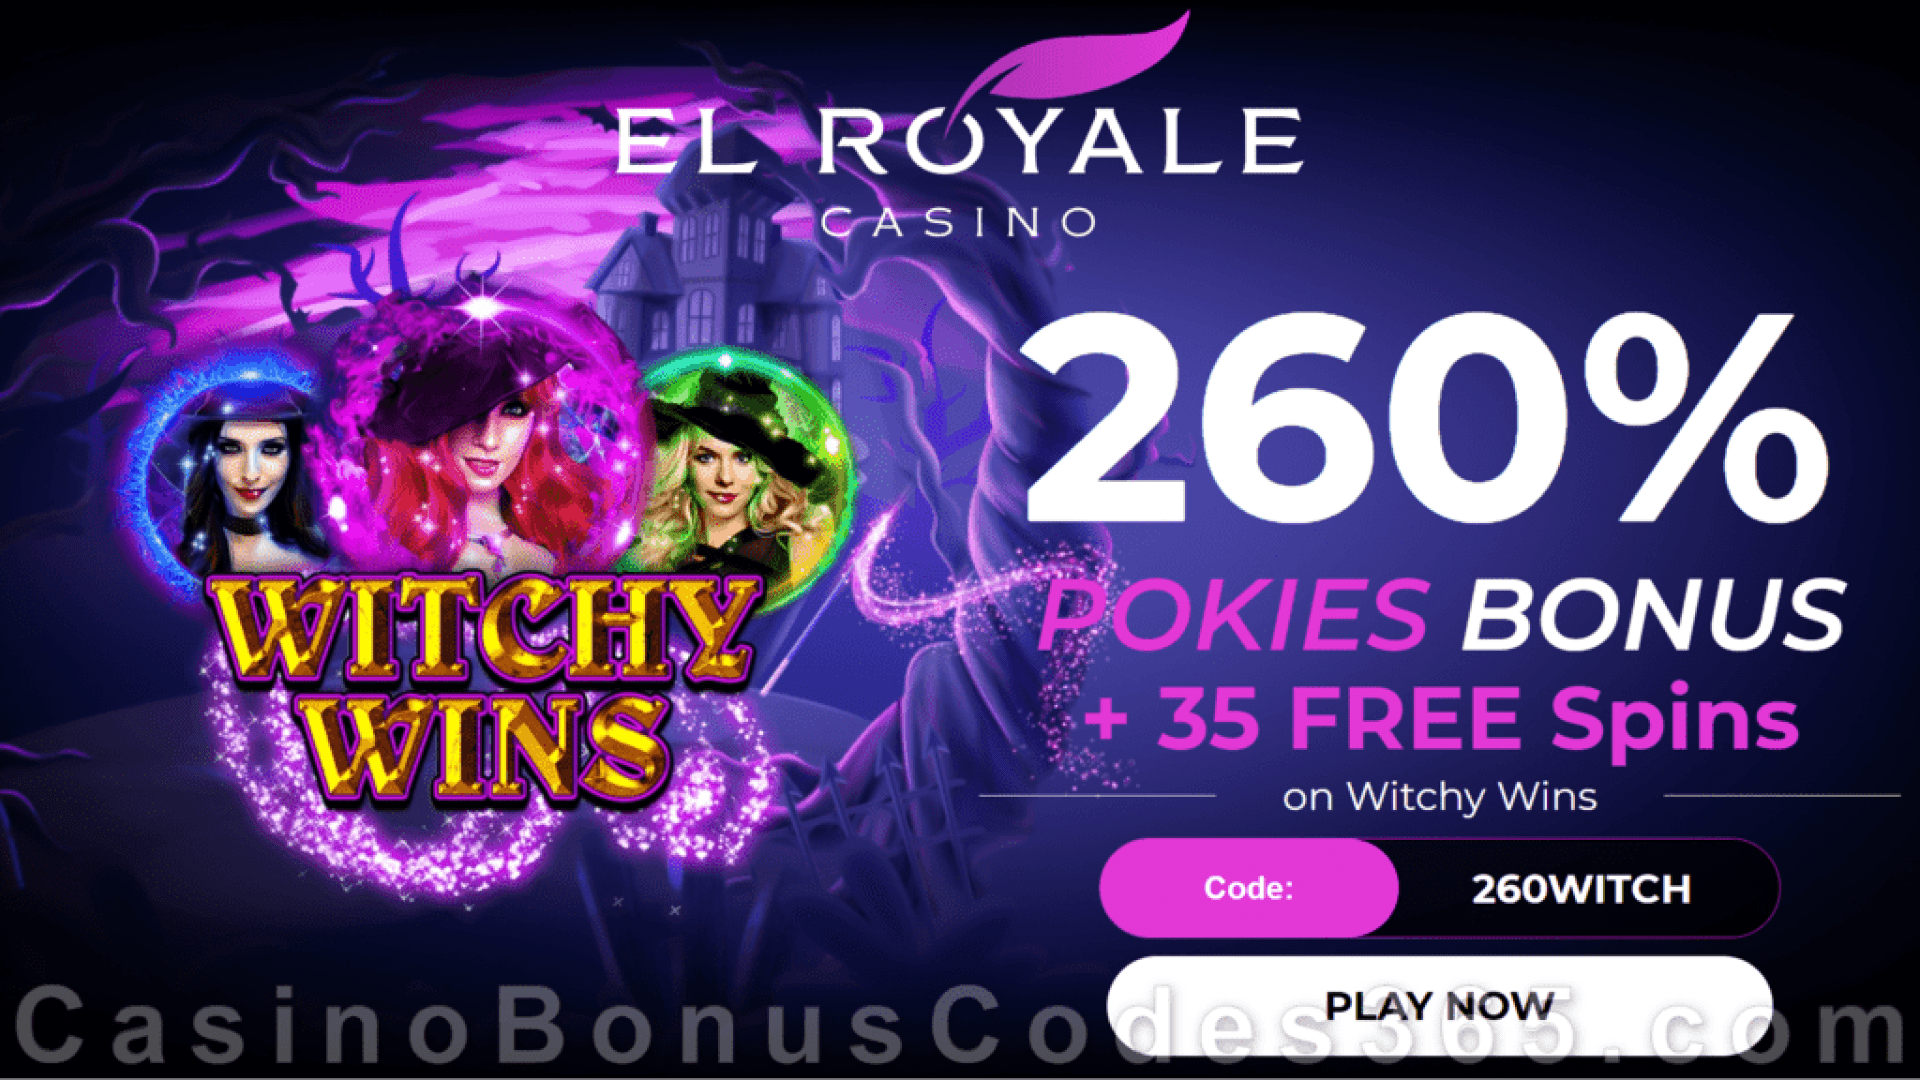 El Royale Casino 260% Match plus 35 FREE RTG Witchy Wins Spins Welcome Bonus